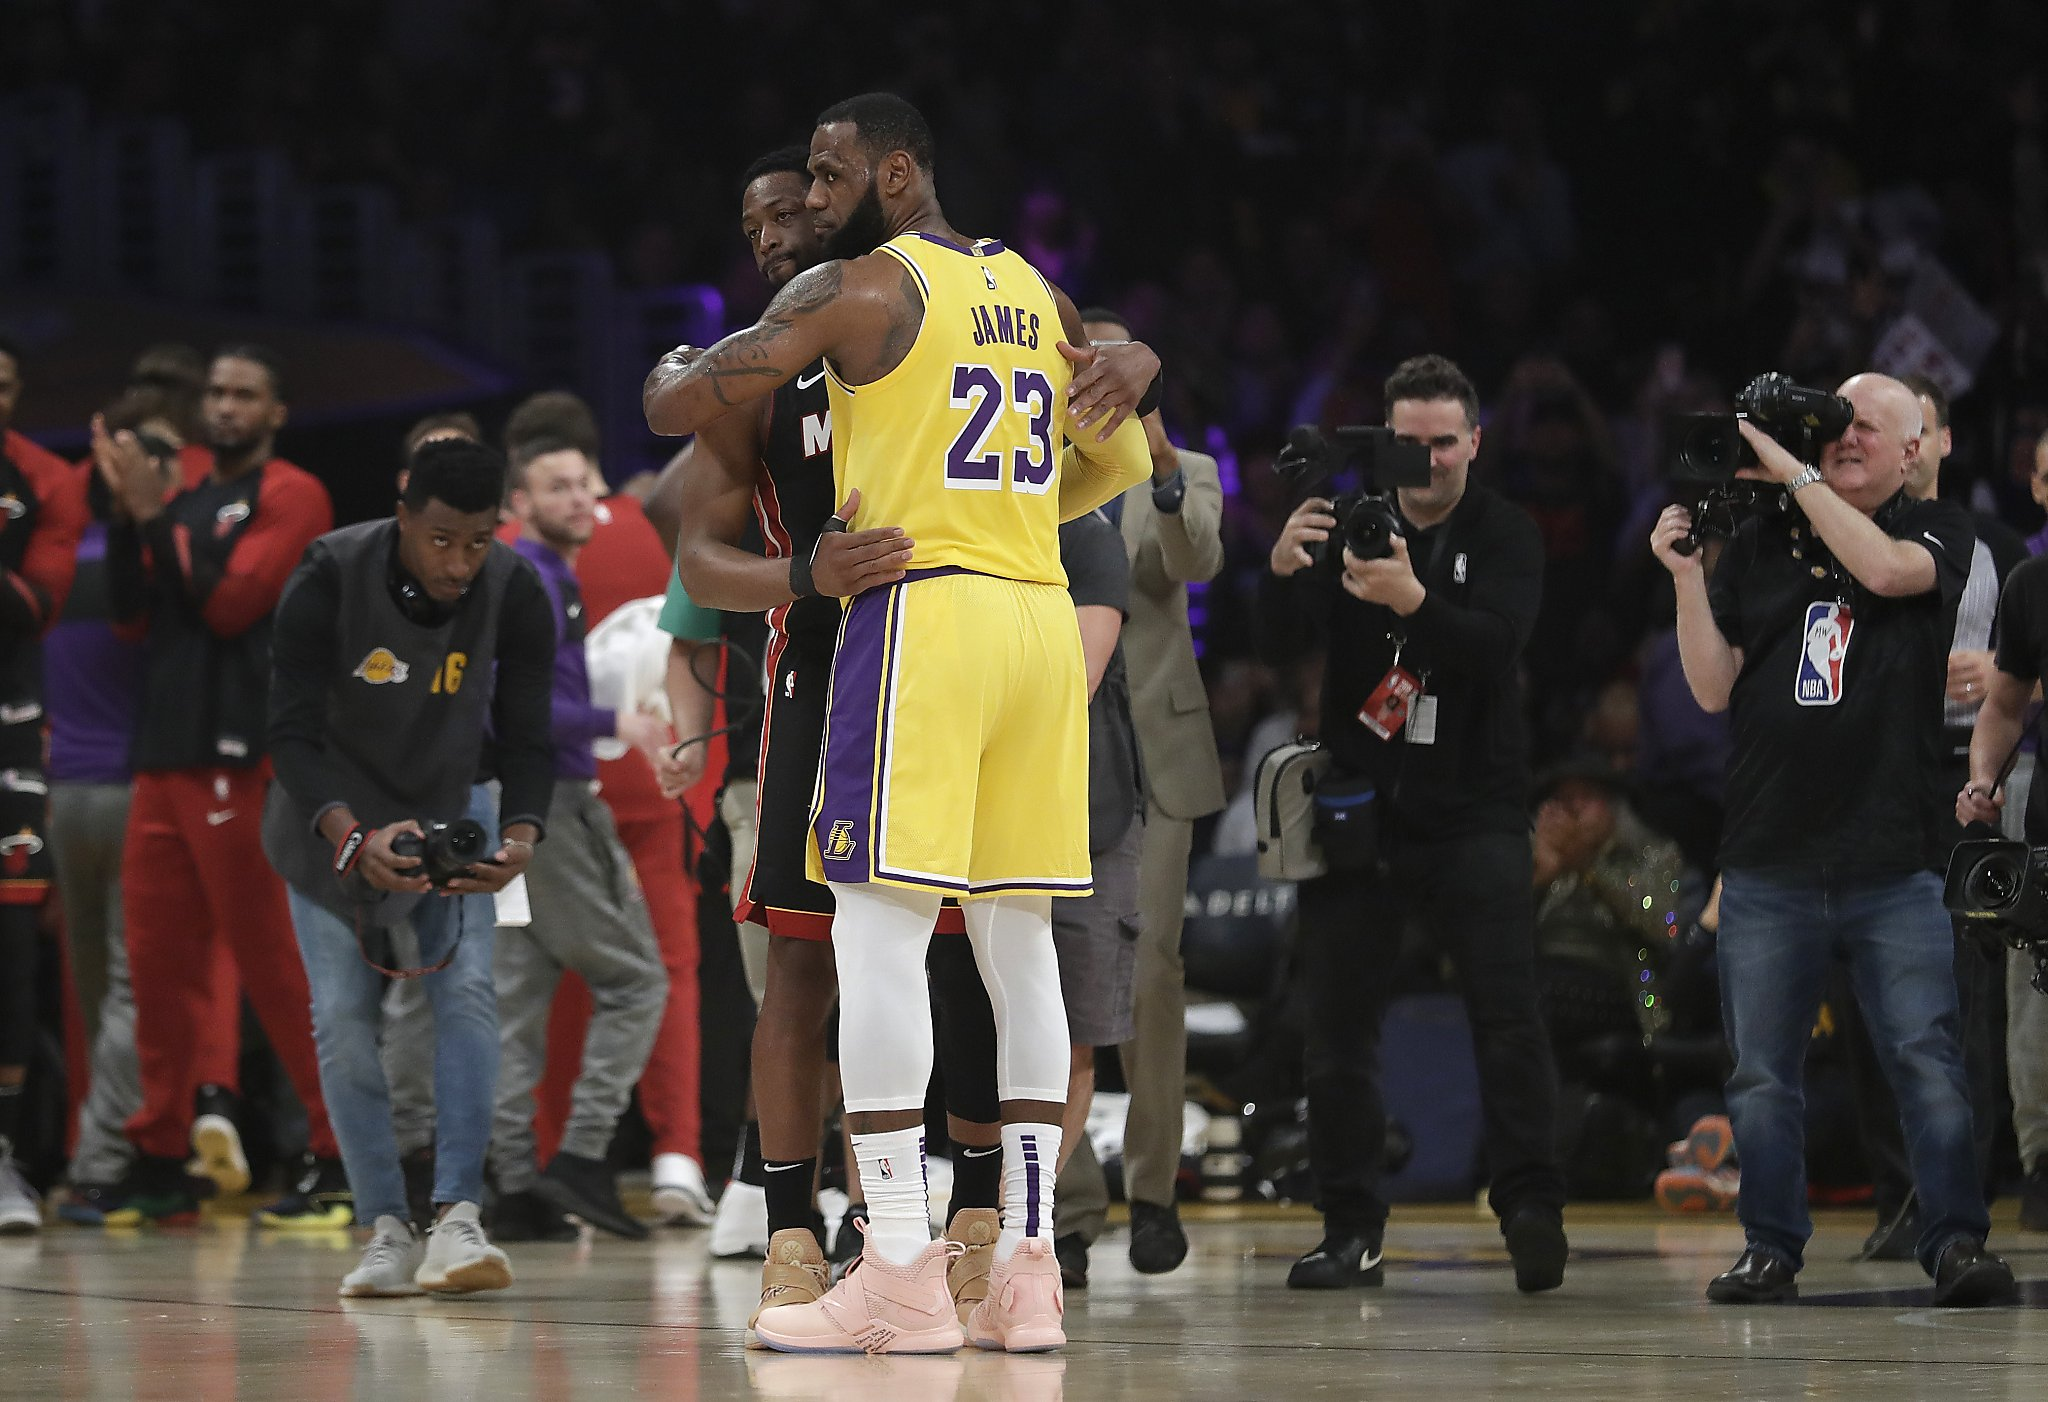 a77fcdae5 LeBron James tops ex-teammate Dwyane Wade in likely last on-court meeting -  SFGate